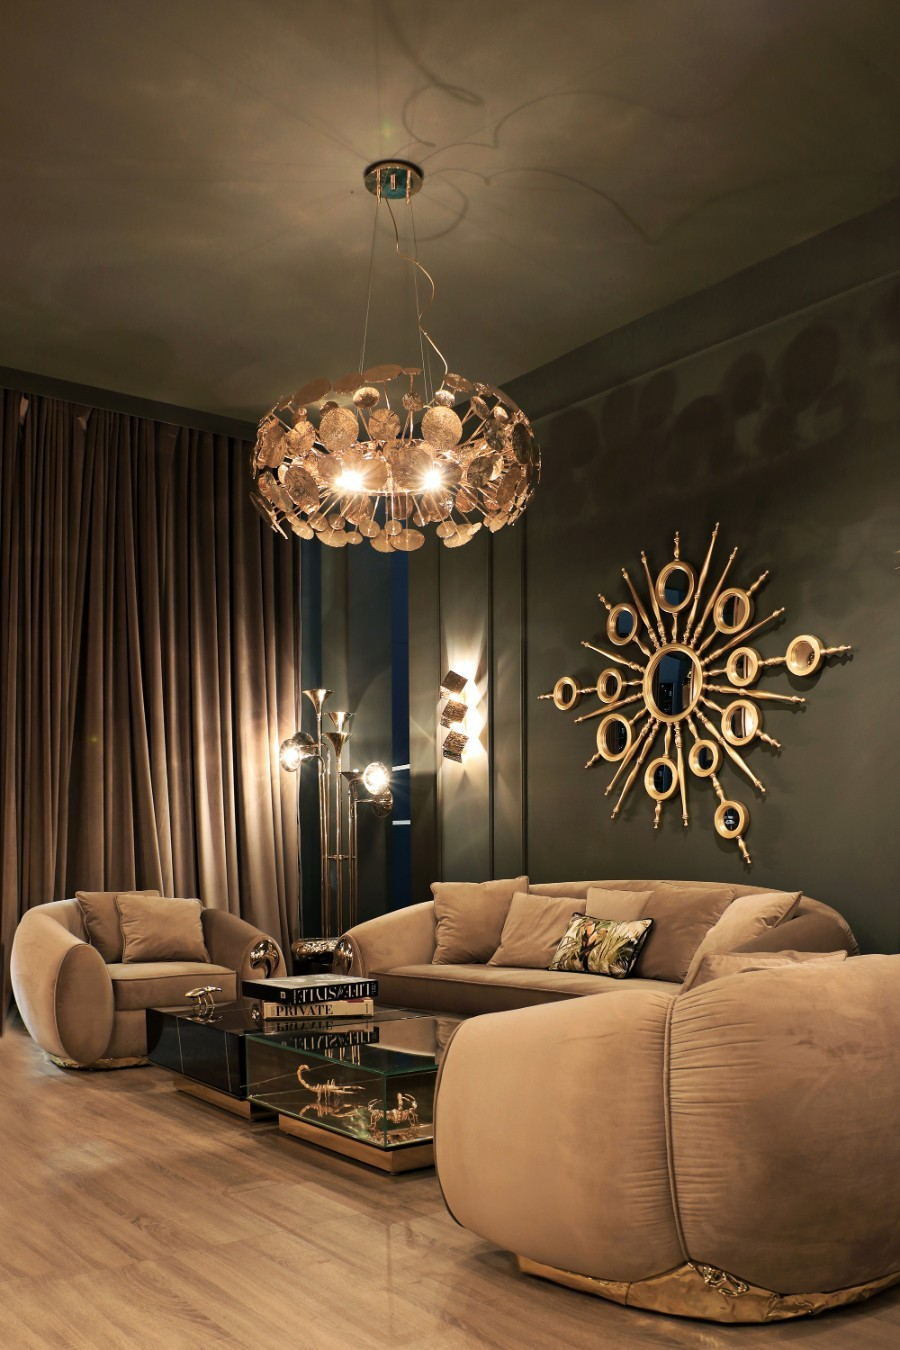 italian interior designers A LITTLE LOOK AT ITALIAN INTERIOR DESIGNERS AND THEIR INFLUENCE The Values of Italian Interior Designers and Their Design Influence 331